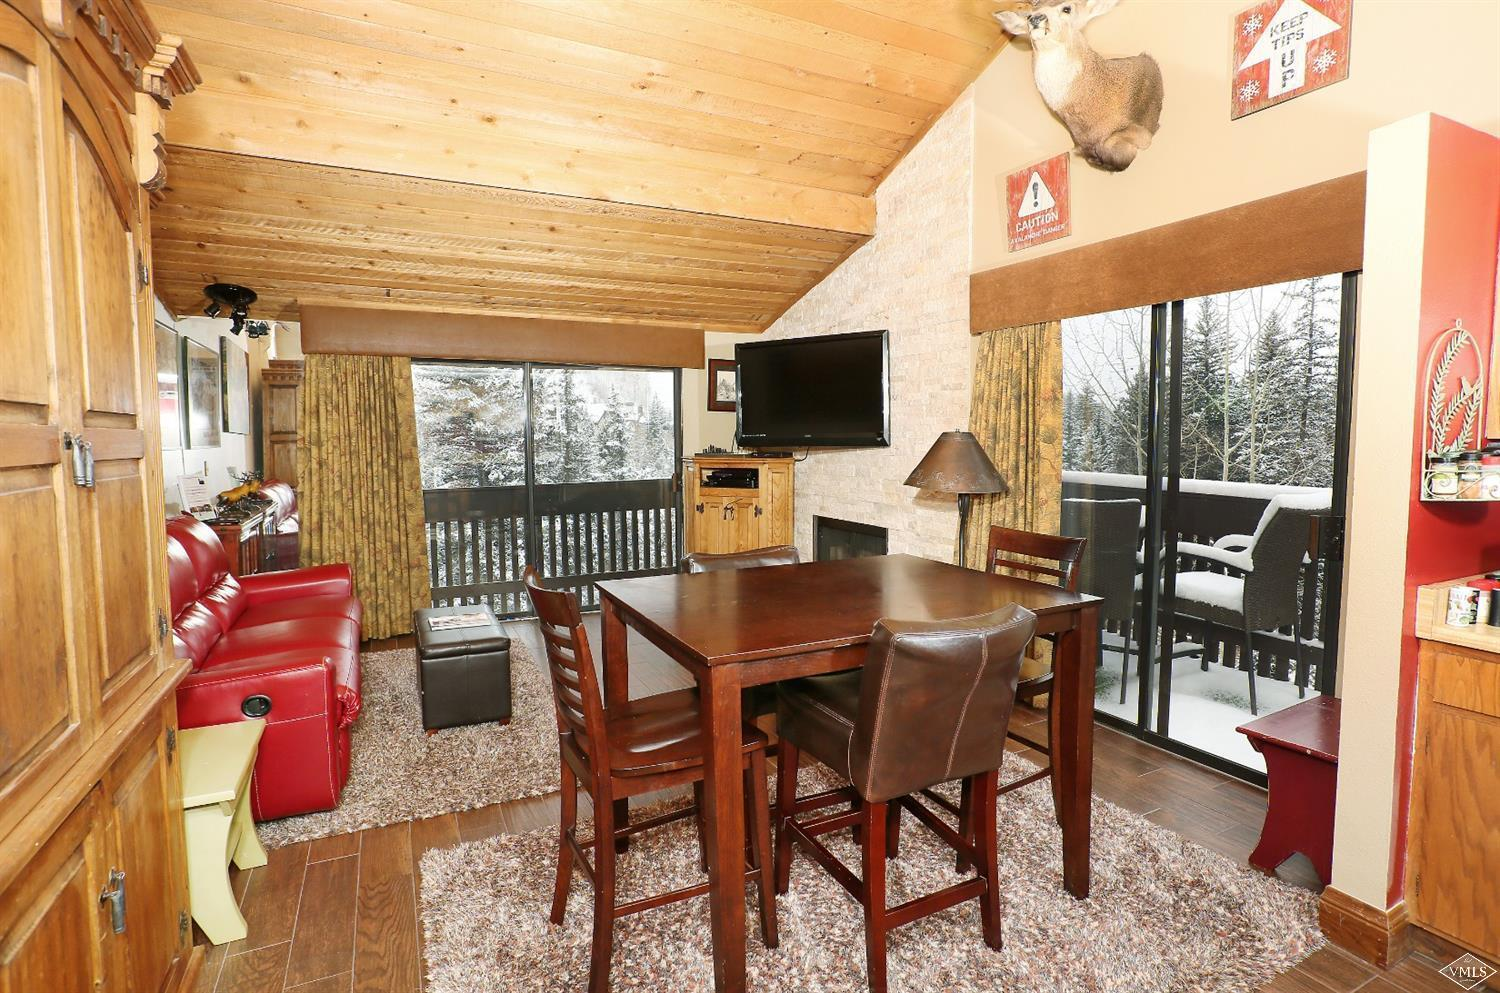 442 S Frontage Road E, B306, Vail, CO 81657 Property Photo - Vail, CO real estate listing